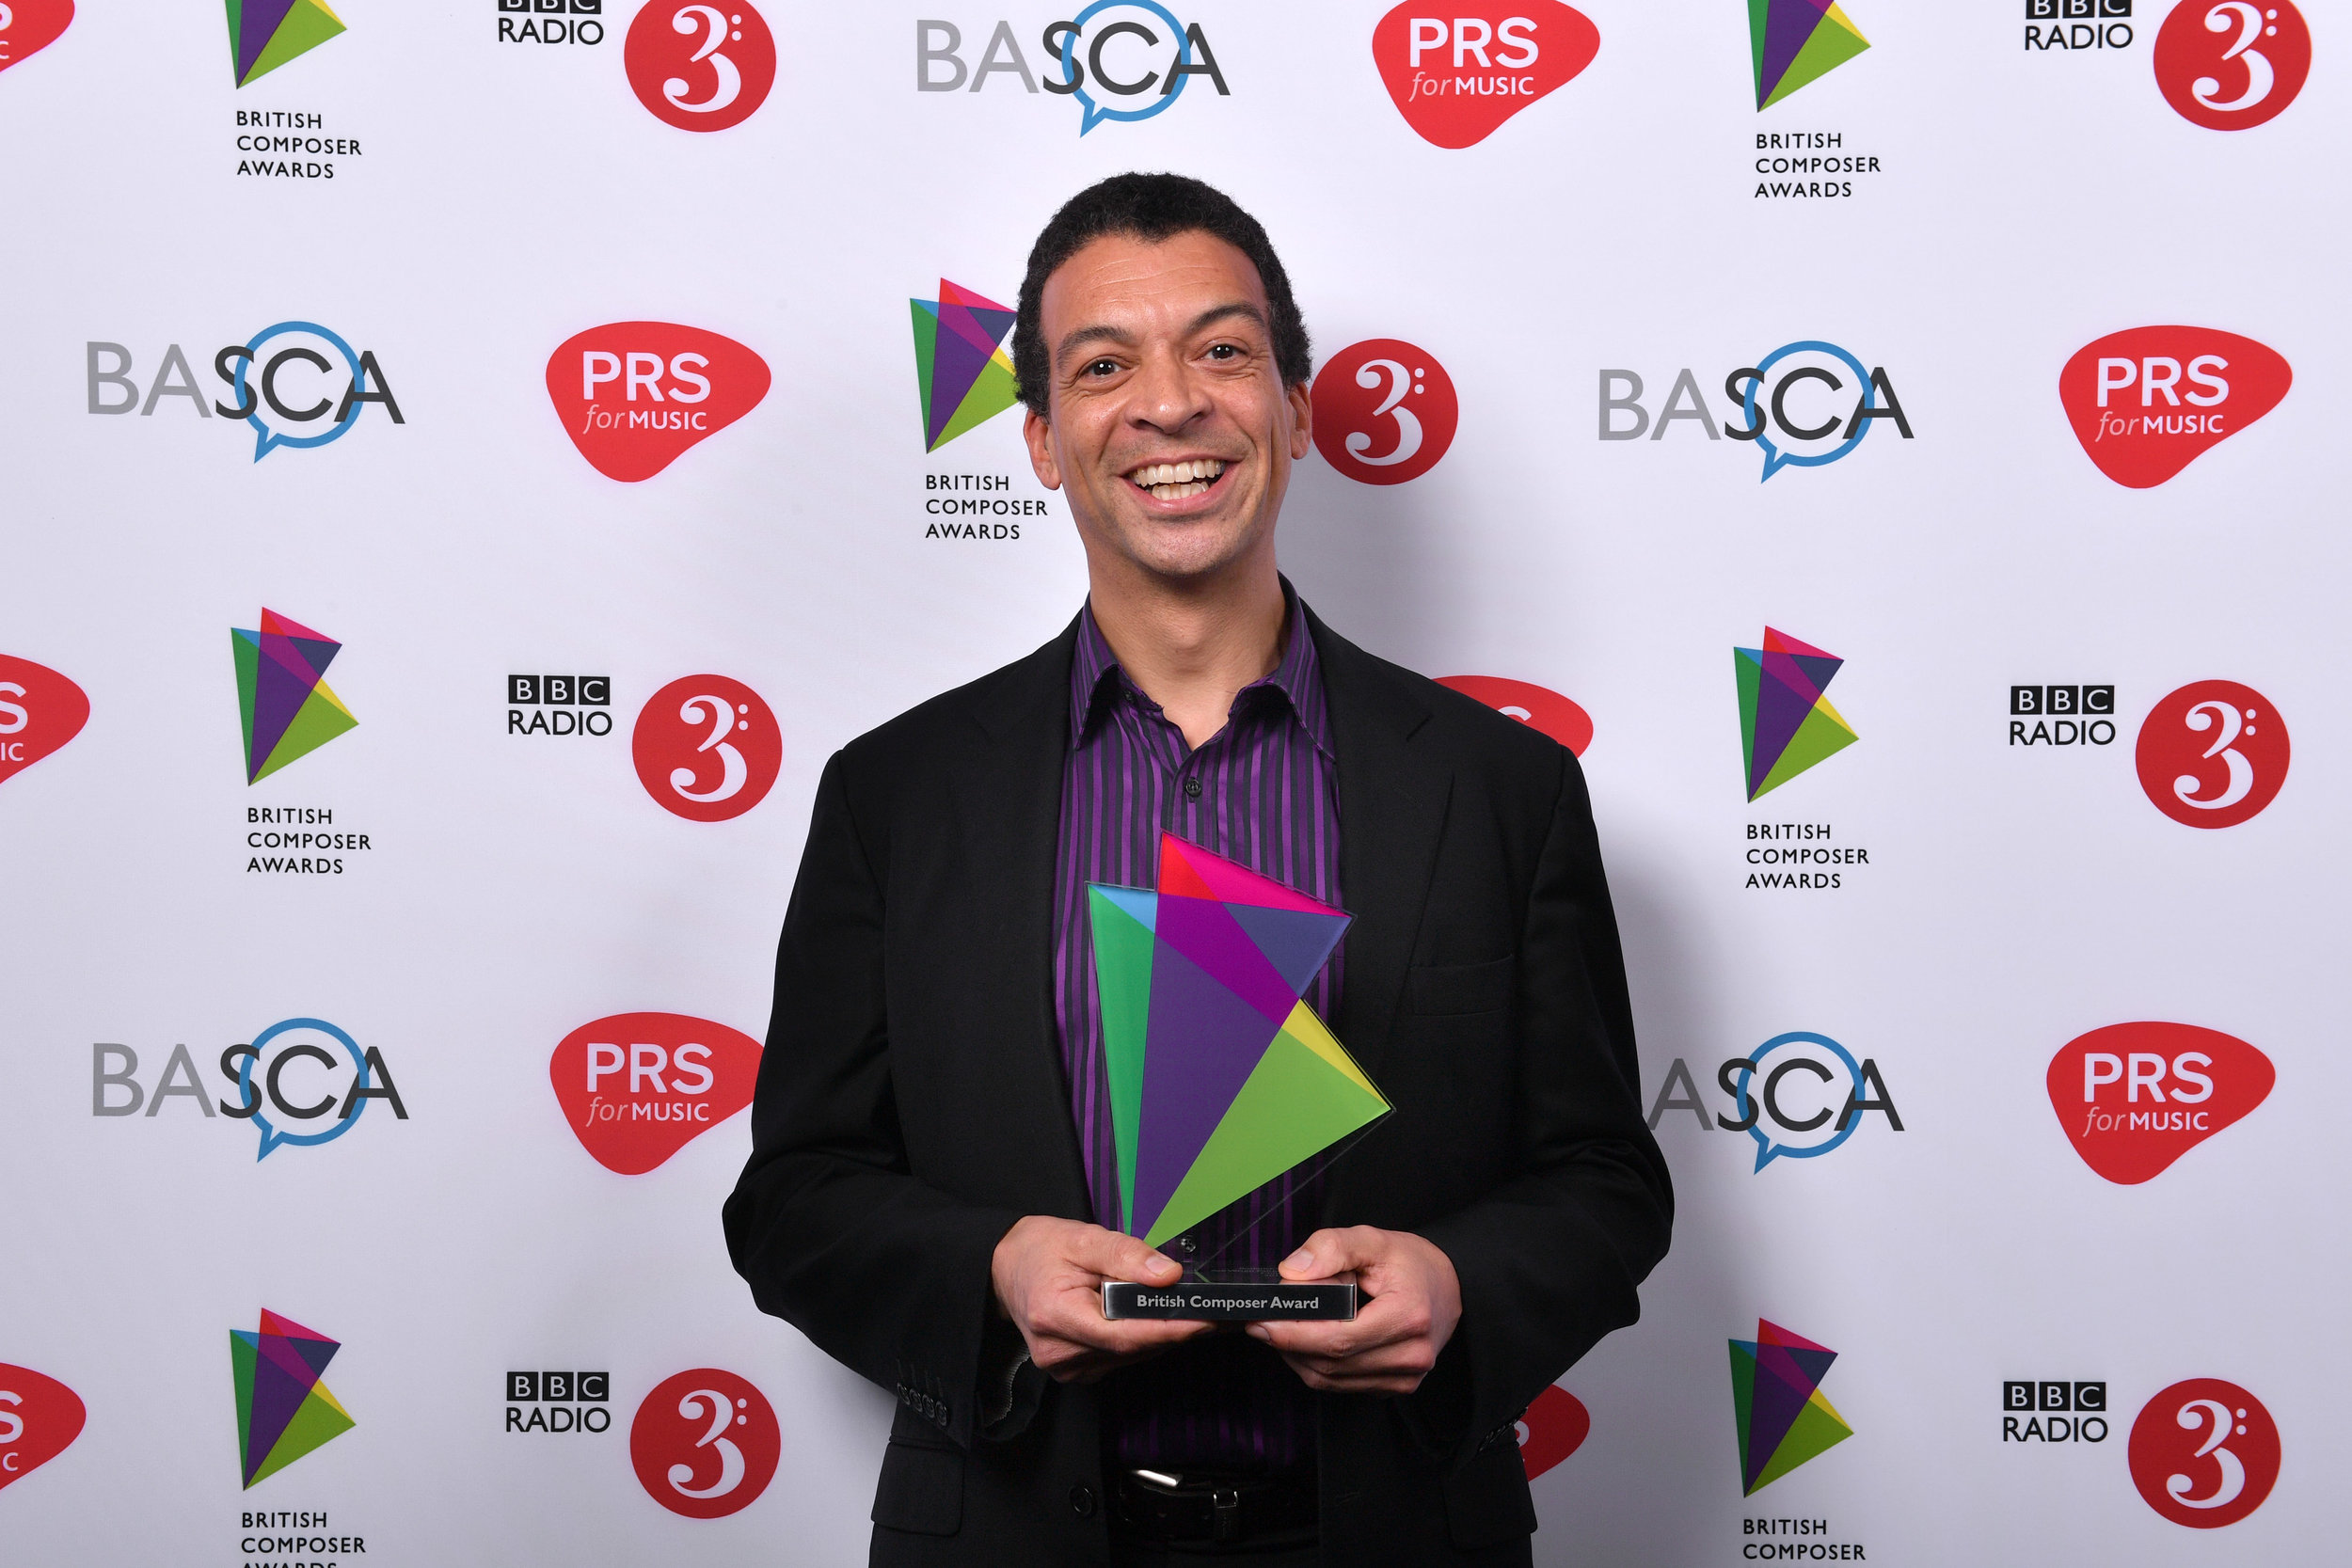 British Composer Award Winner! - In 2017, ORA was proud to see one of its commissions, Roderick Williams' 'Ave verum corpus Re-Imagined' receive a British Composer Award in the choral category. We are delighted to commission so many deserving composers and that their works are quickly being recognised for their excellence.Photo credit BASCA and © Mark Allan.